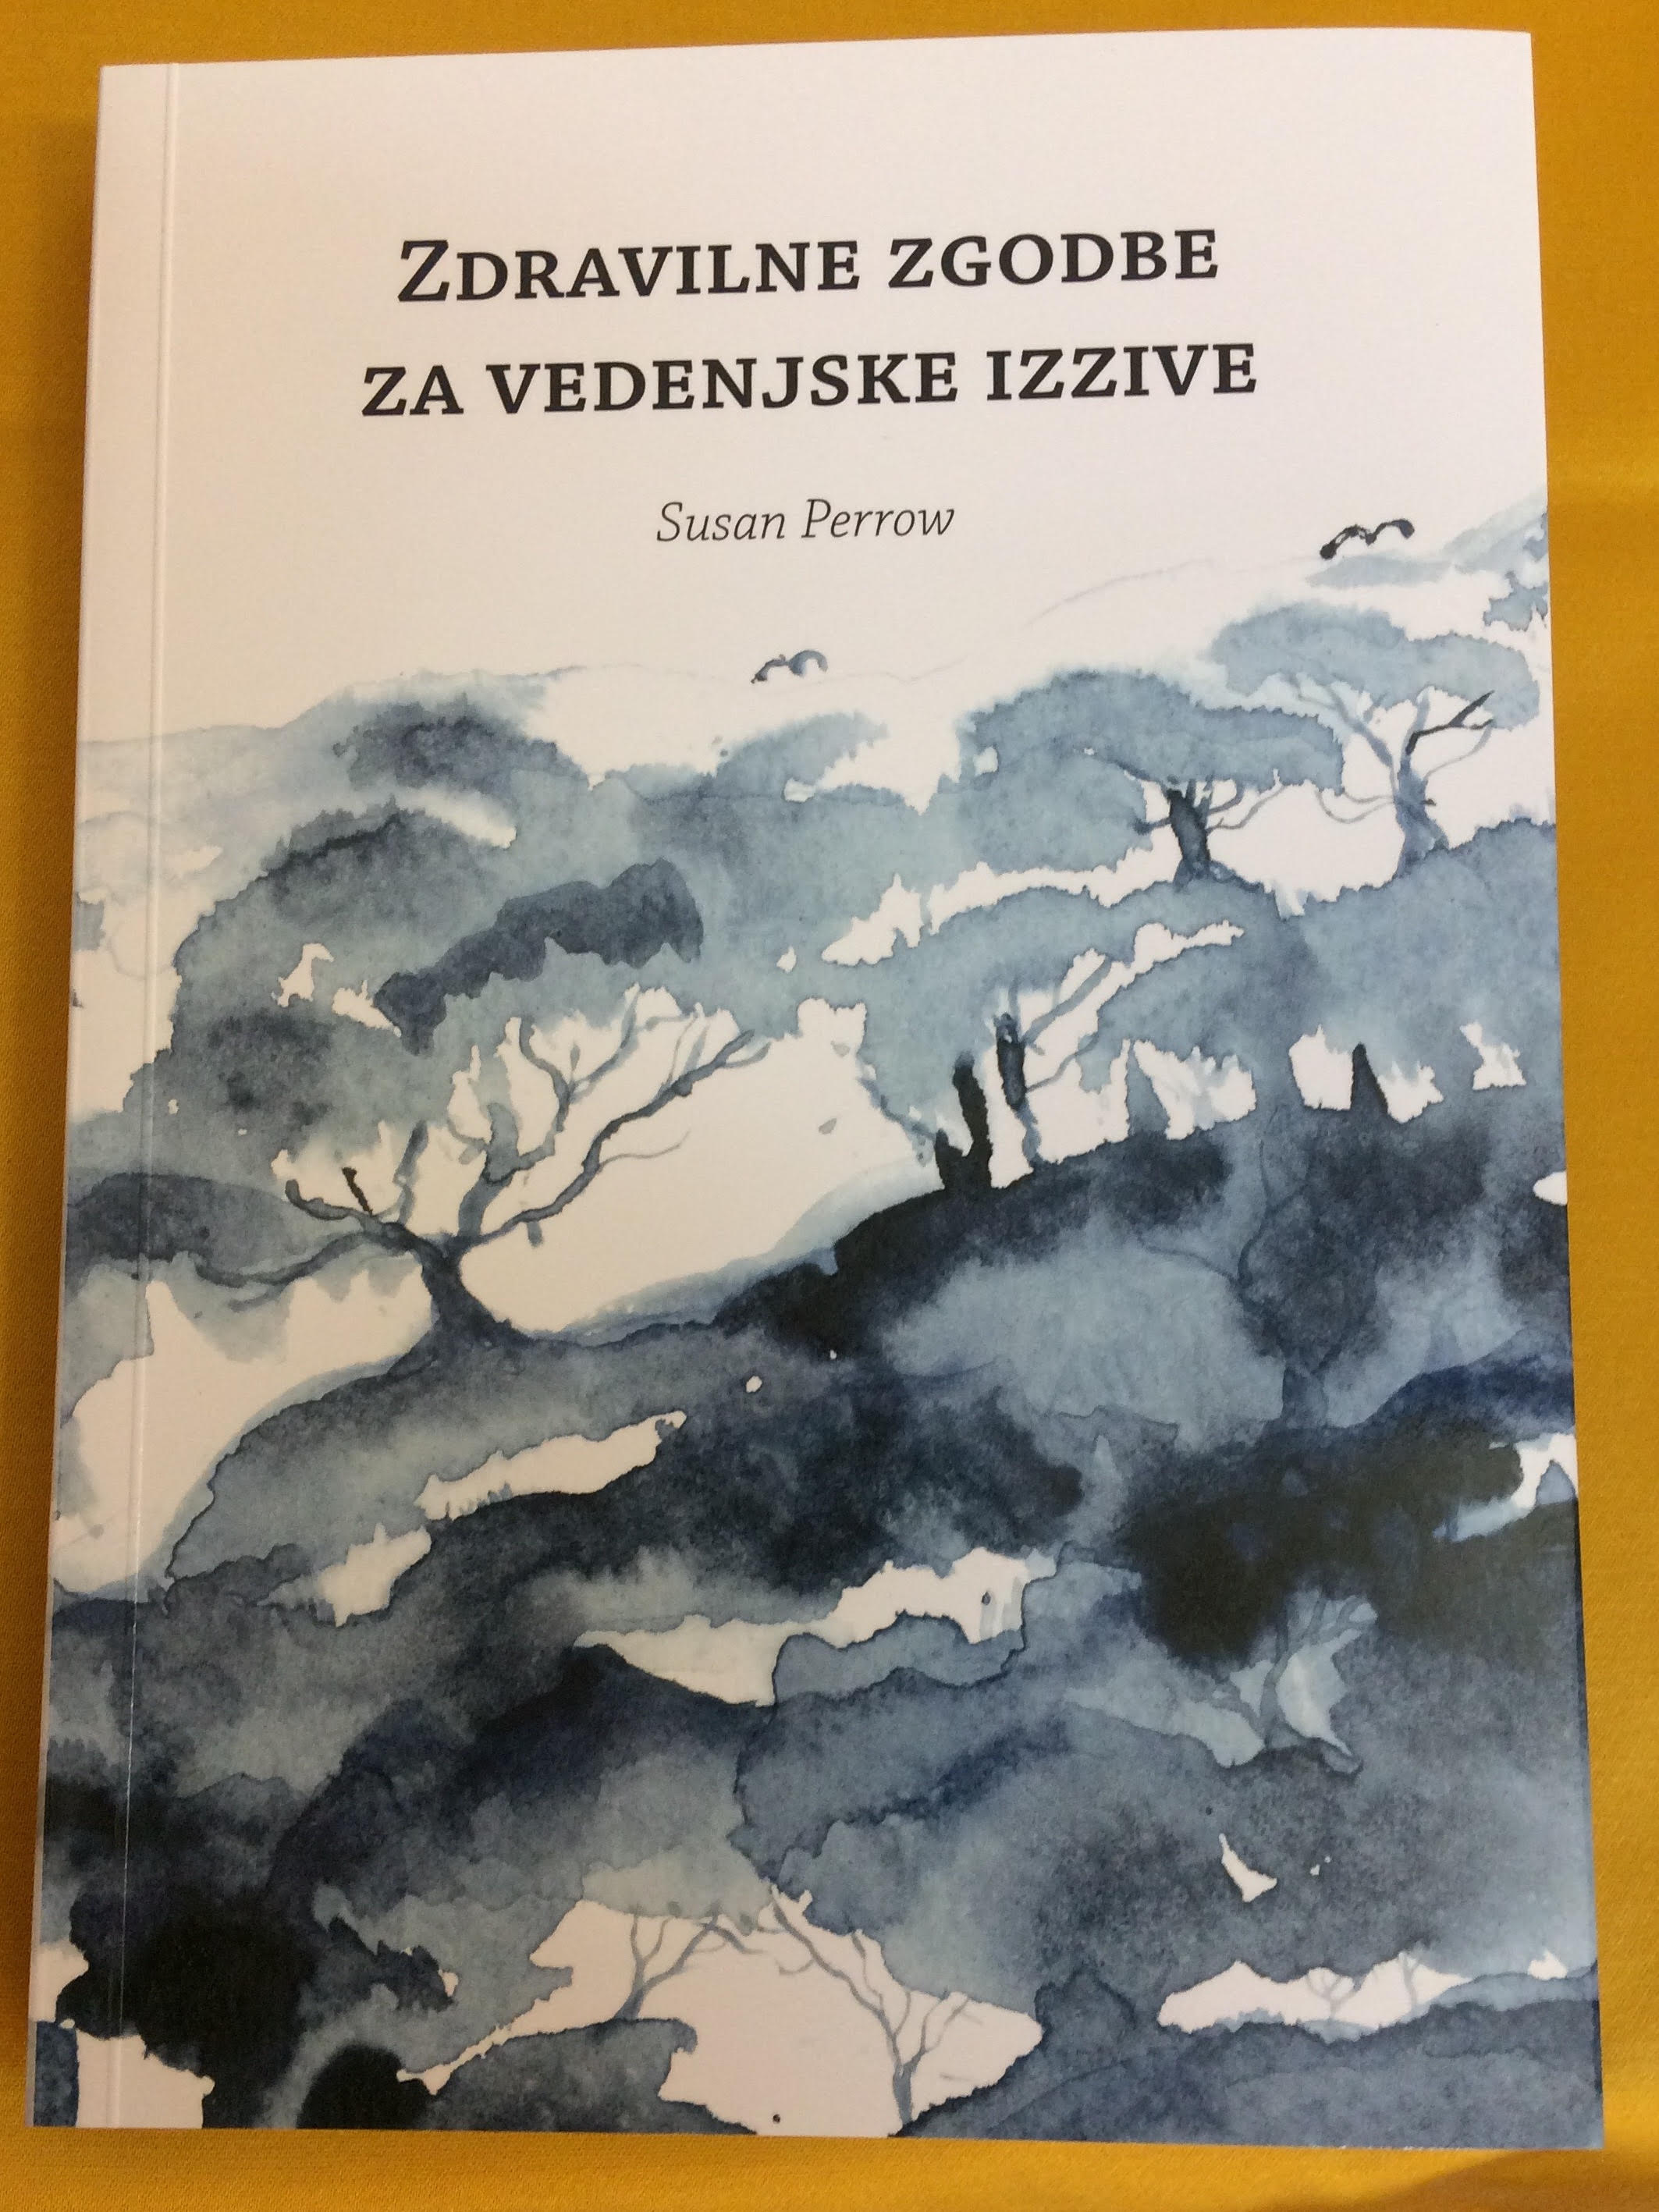 Slovenian Translation - April 2018